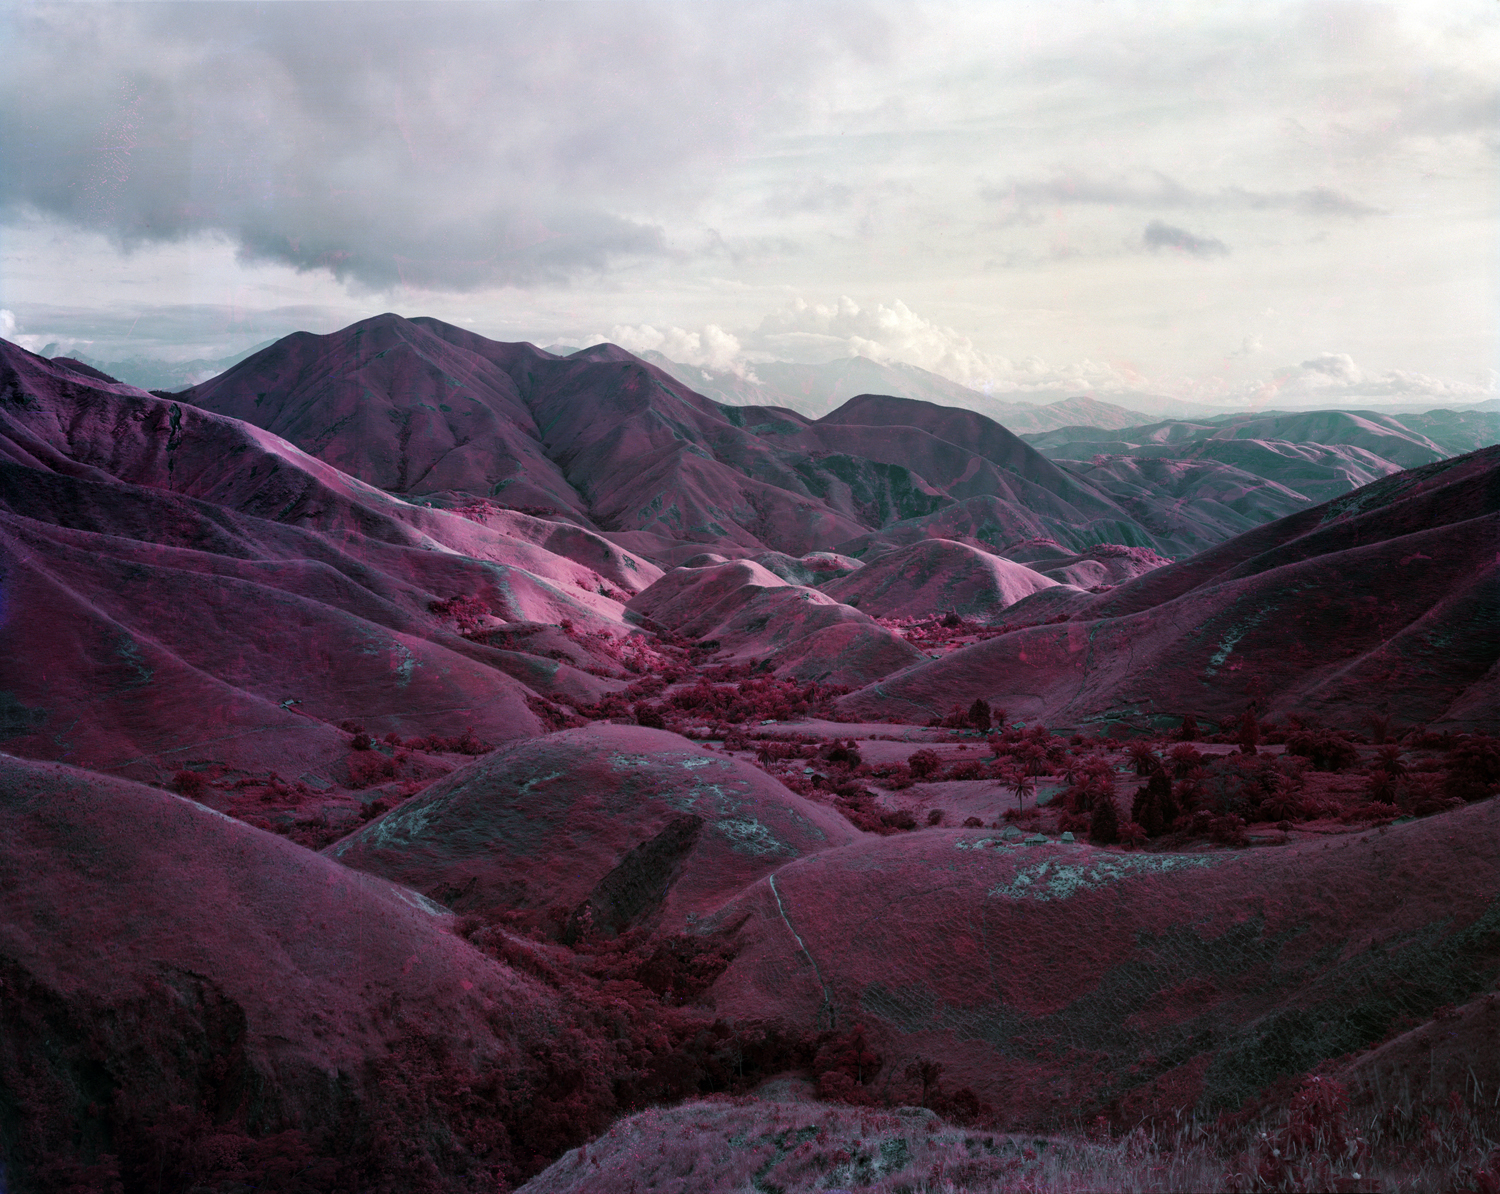 Of course it's impossible to pick a single favorite but the book I kept coming back to this year was Richard Mosse's INFRA (co-published by Aperture and the Pulitzer Center on Crisis Reporting), which is an unconventional look at rebel conflicts in the eastern Congo. Mosse's surreal infrared landscape views depict a place that's as foreign to me as a distant planet so it's fitting that they're drenched in the otherworldly crimson hues that manifest themselves in the worlds of Dr. Seuss. These images have been shown extensively online, their brilliant color tailor-made for a monitor's glowing screen. That effect is wonderfully rendered on these printed pages and the weird battlefield visuals keep you looking. Is this war reportage or art photography? The answer lies somewhere in between and the path to that discovery is fascinating and marvelous.                                                               —Andy Adams, Publisher, FlakPhoto.com